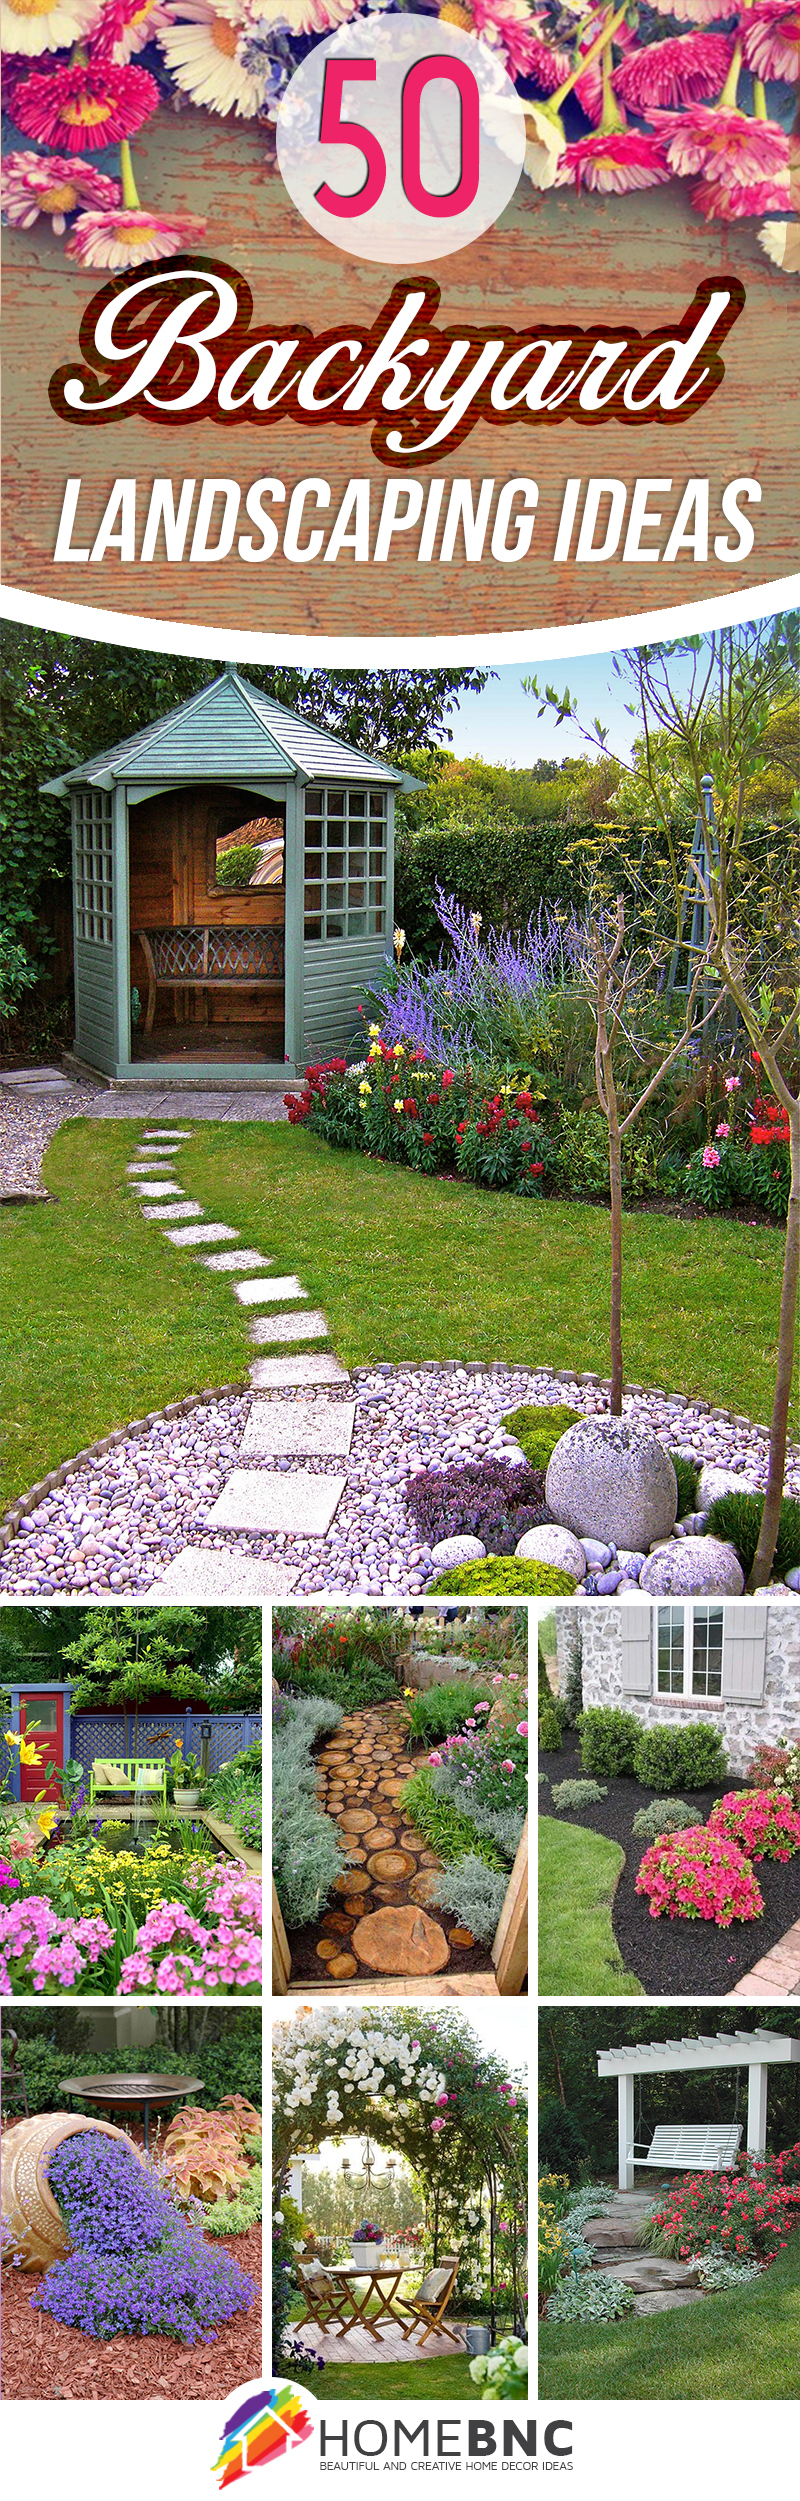 50 Best Backyard Landscaping Ideas And Designs In 2019 pertaining to Landscape Design Backyard Ideas